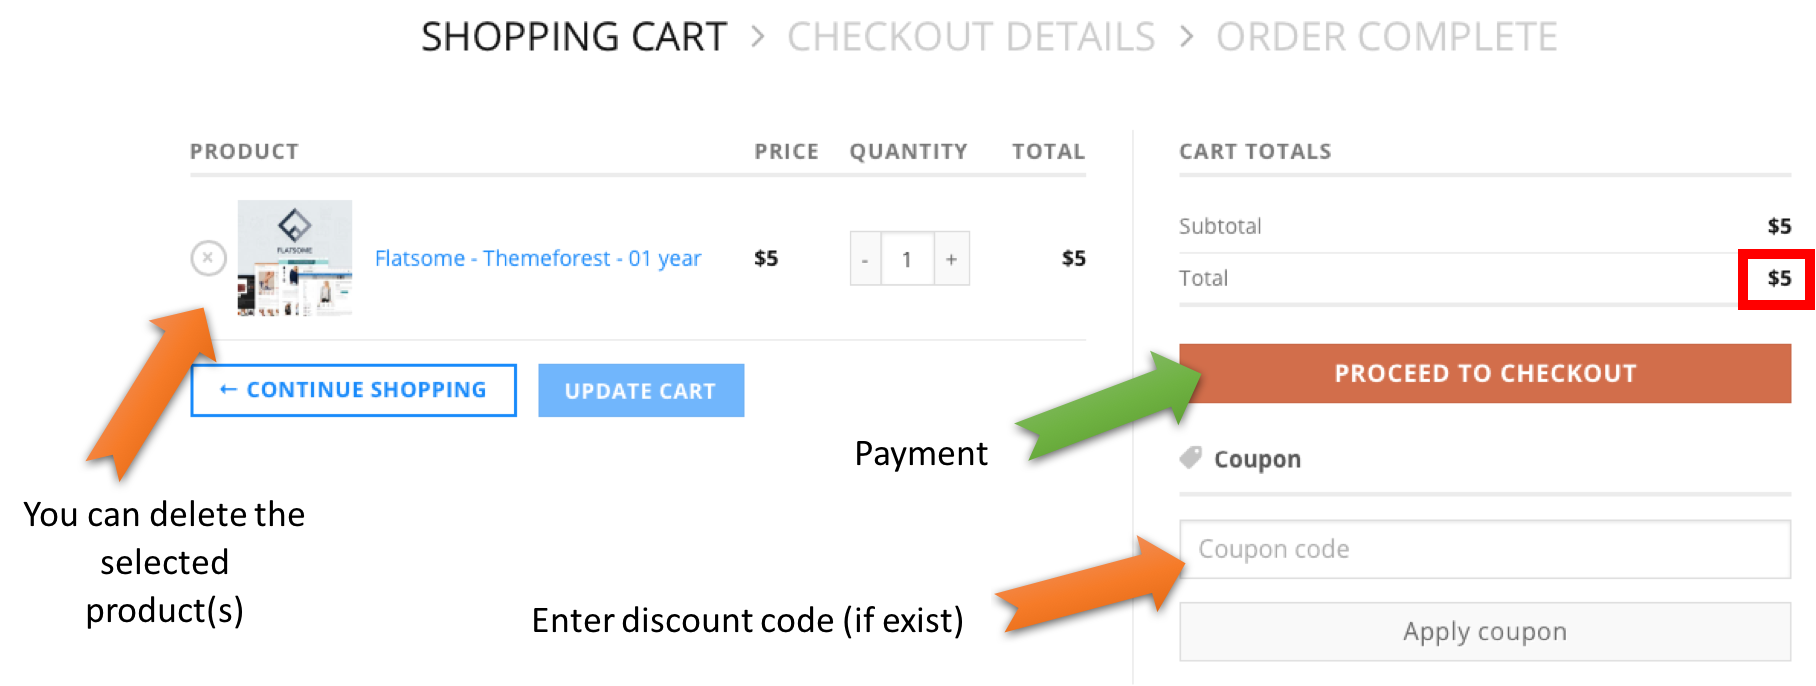 Check and manage shopping cart